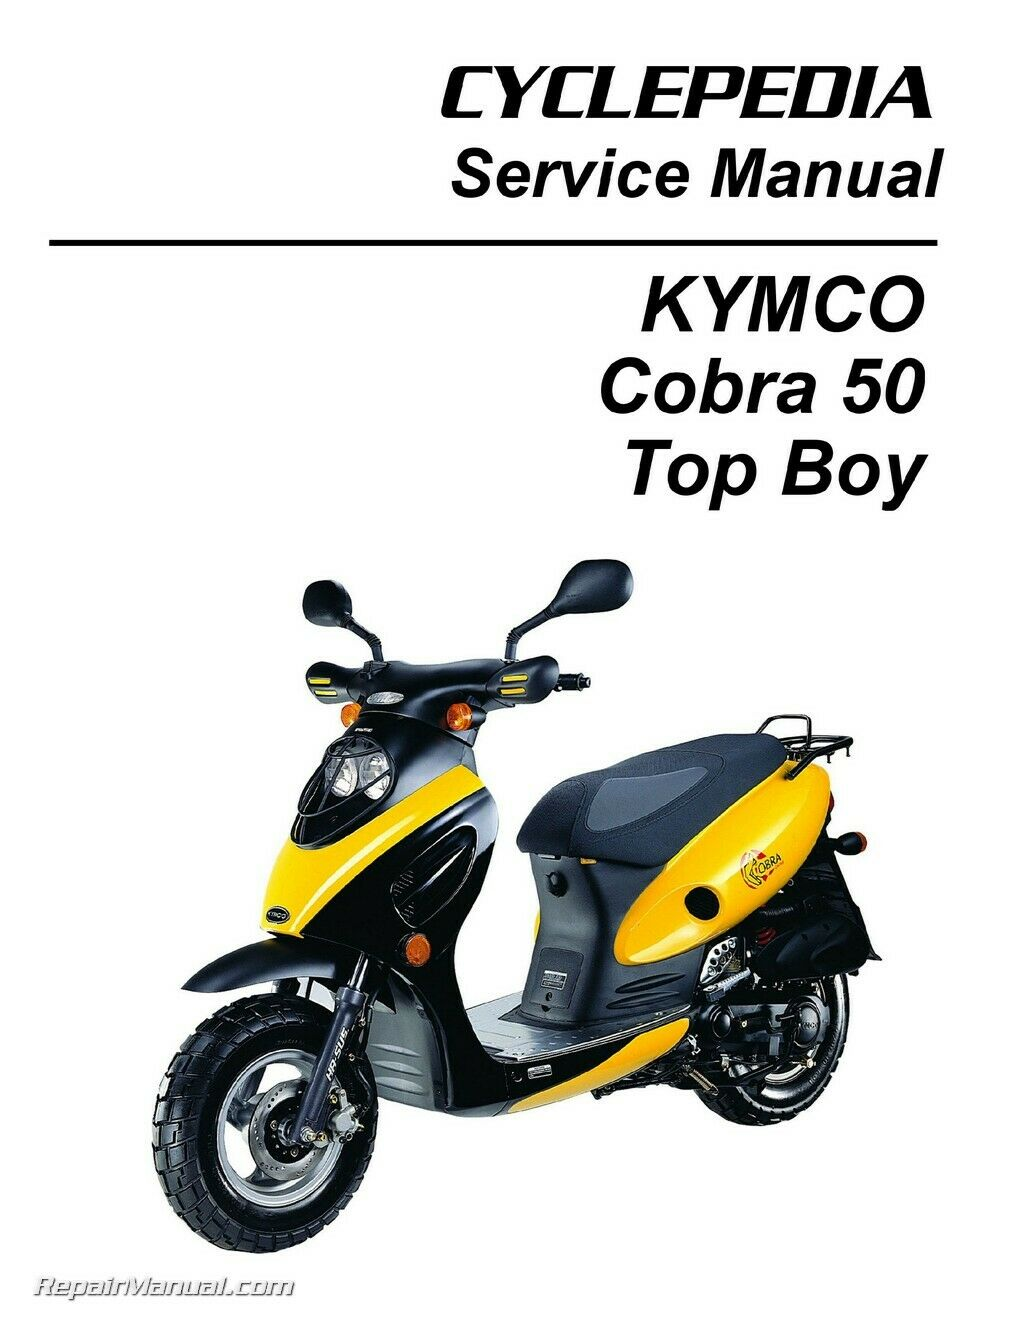 KYMCO Cobra 50 - Top Boy Scooter Service Manual Printed by CYCLEPEDIA 1 of  1Only 4 available ...